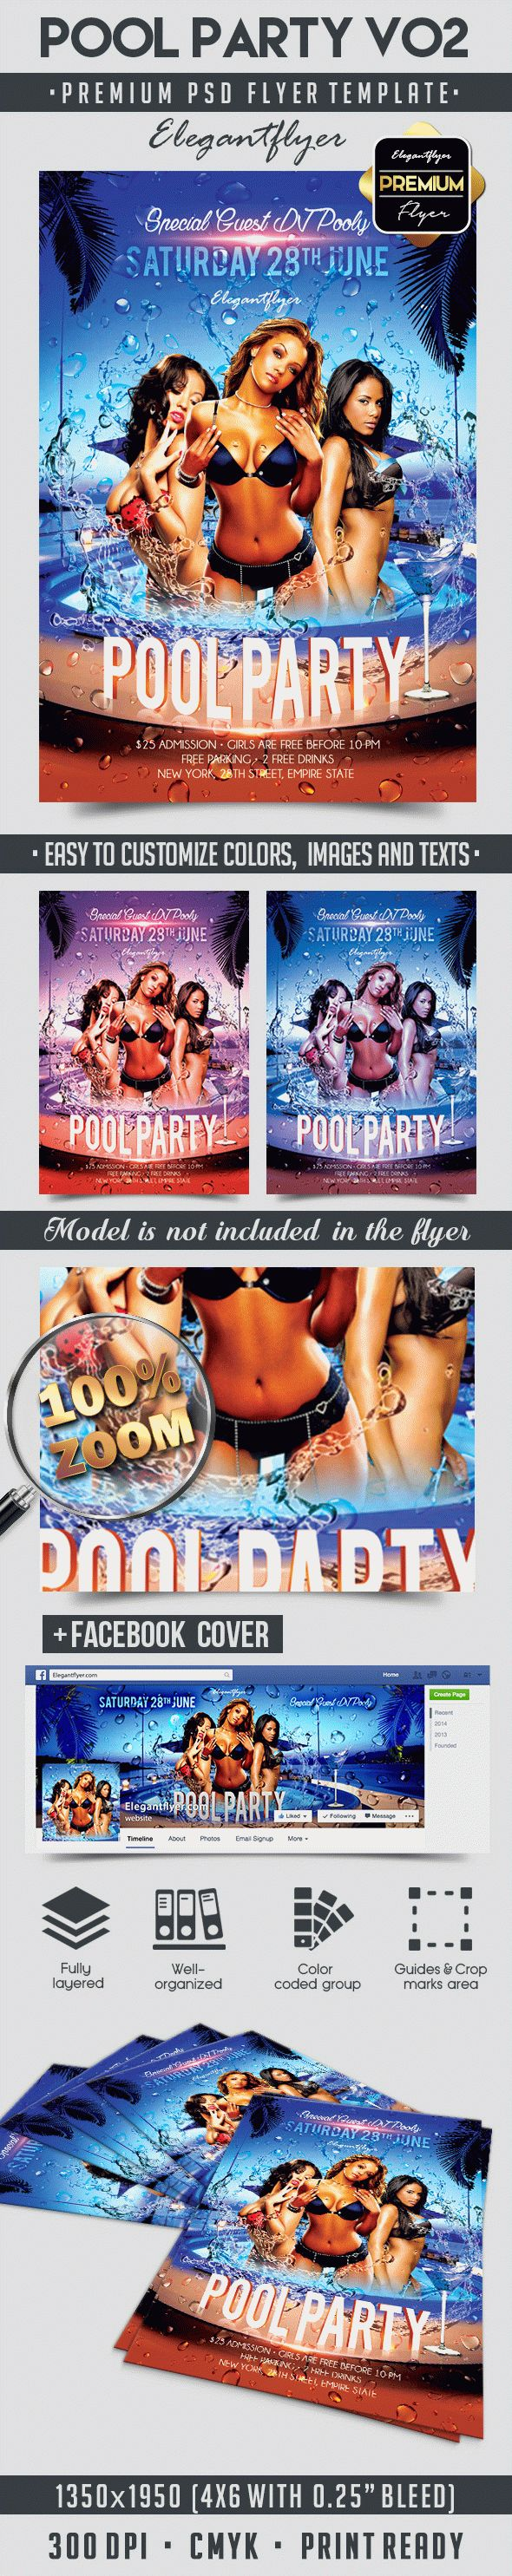 Pool Party V02 – Flyer PSD Template + Facebook Cover